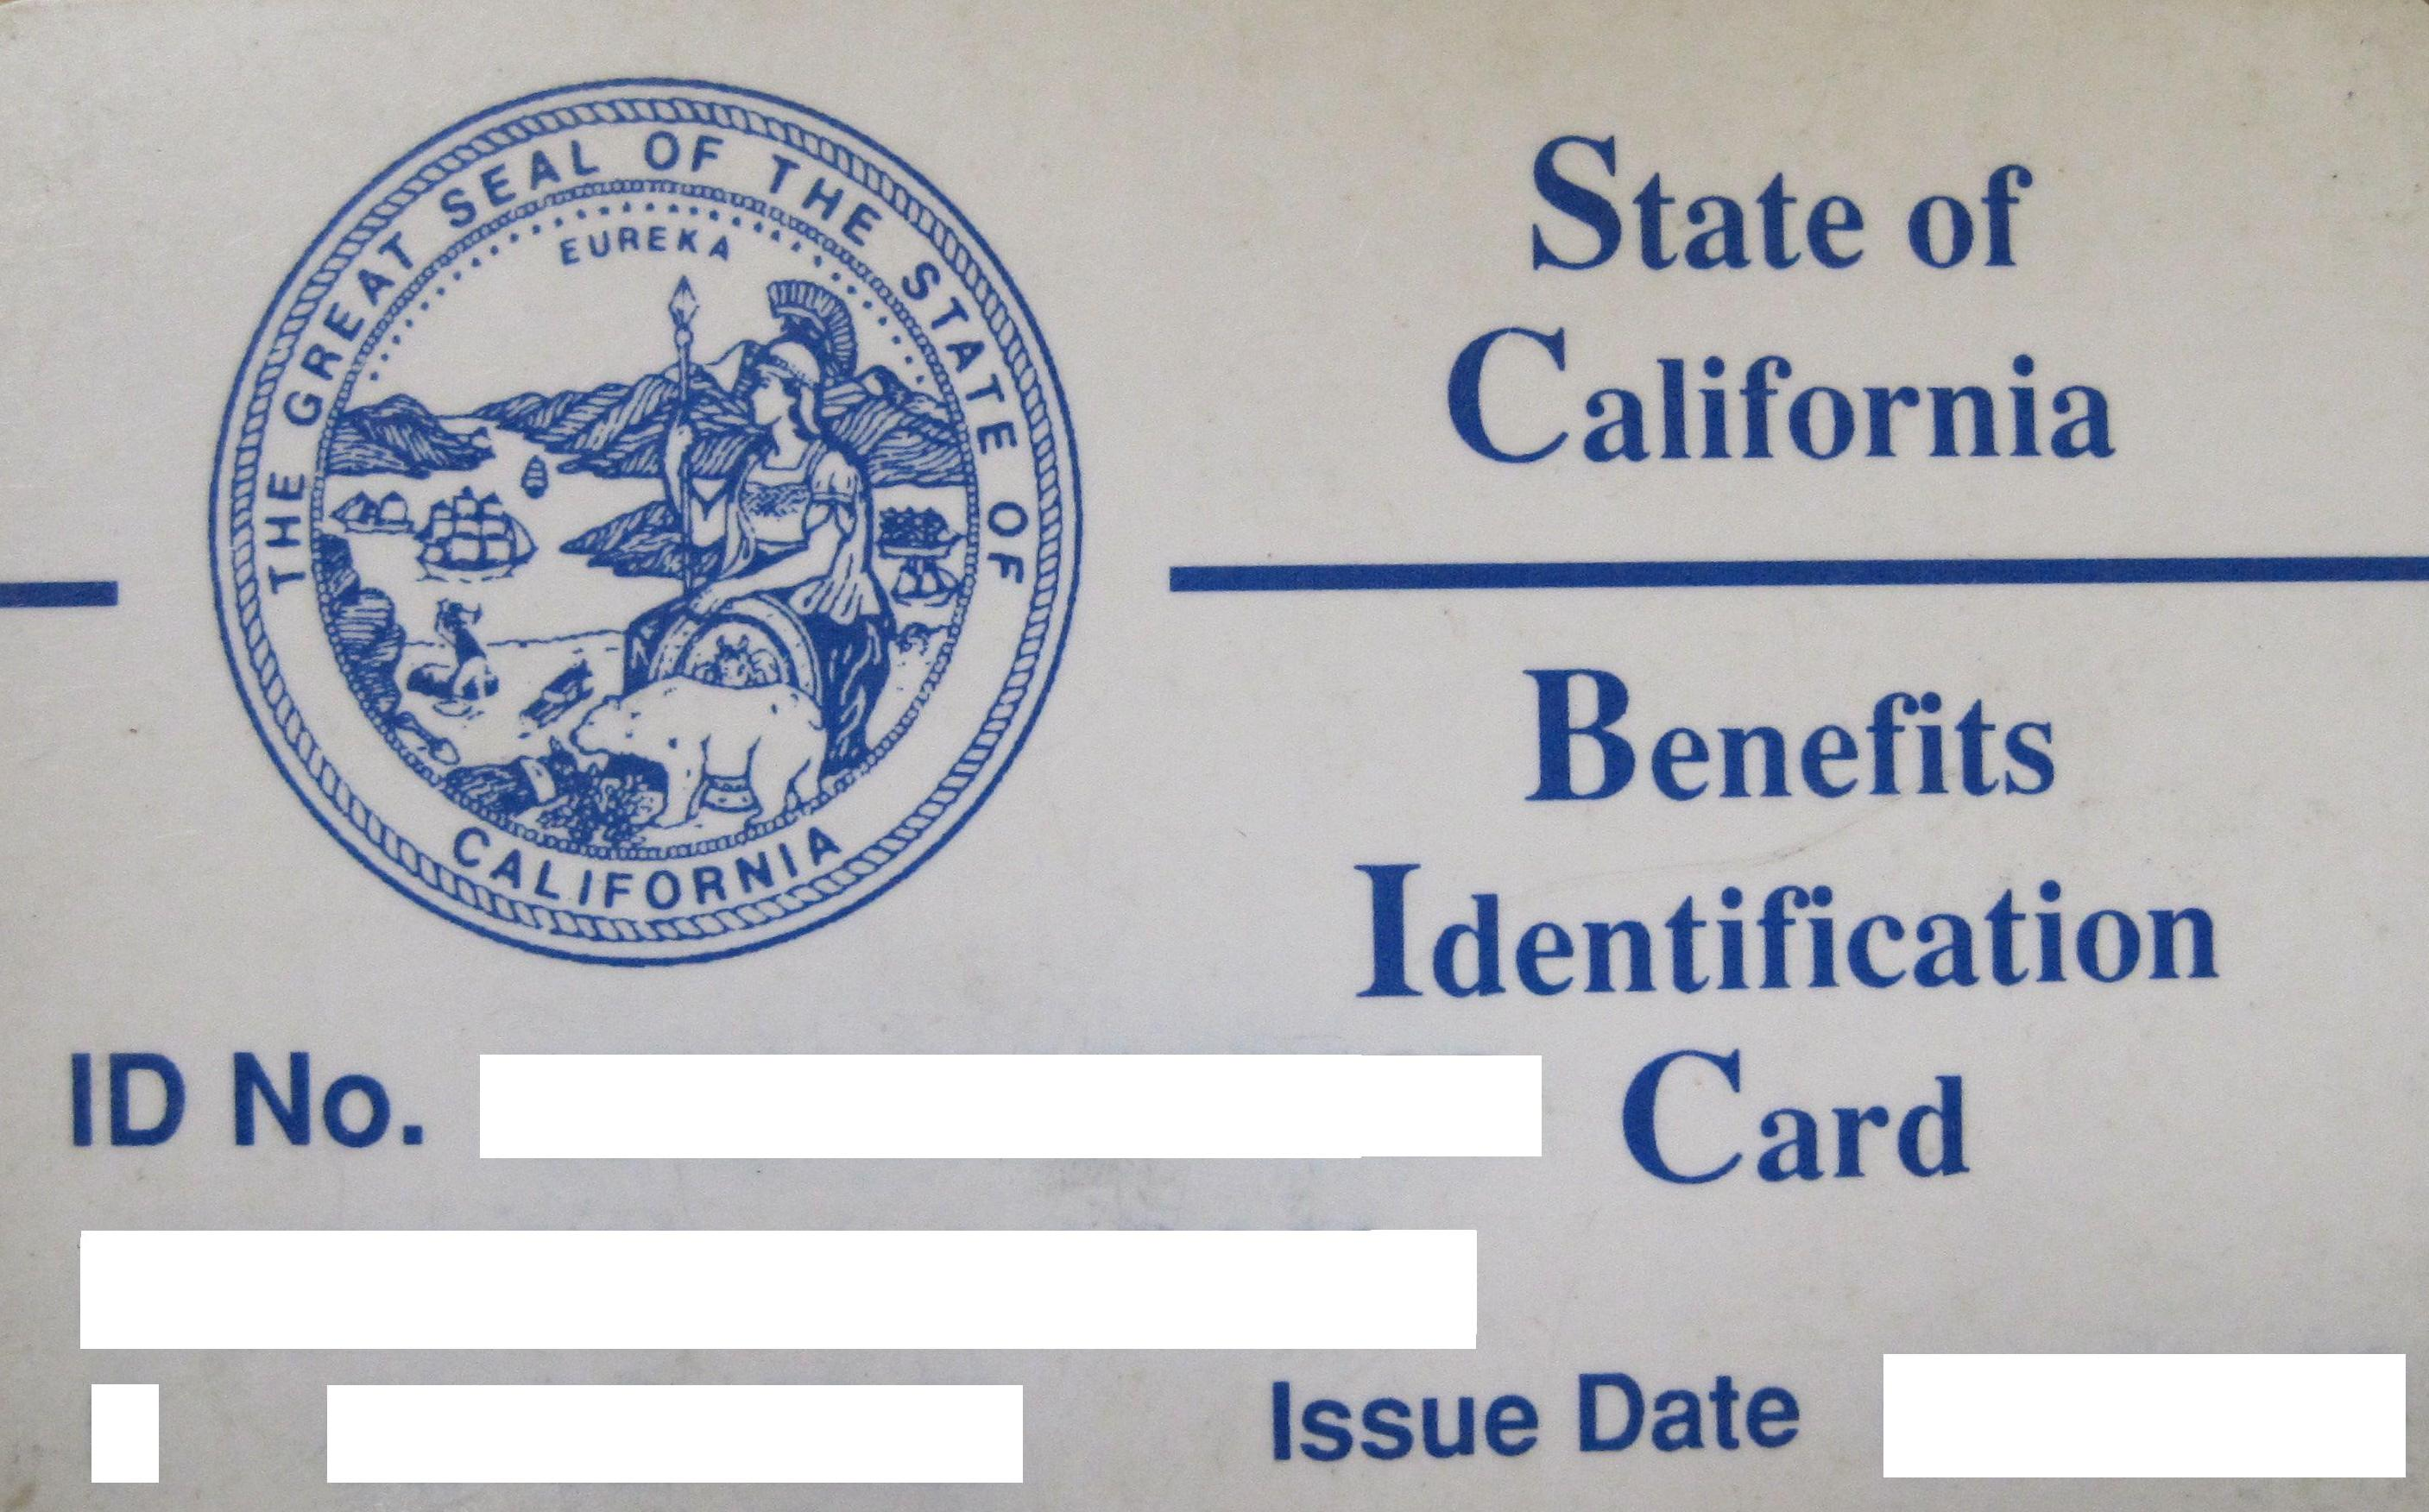 CaliforniaBenefitsIDCard